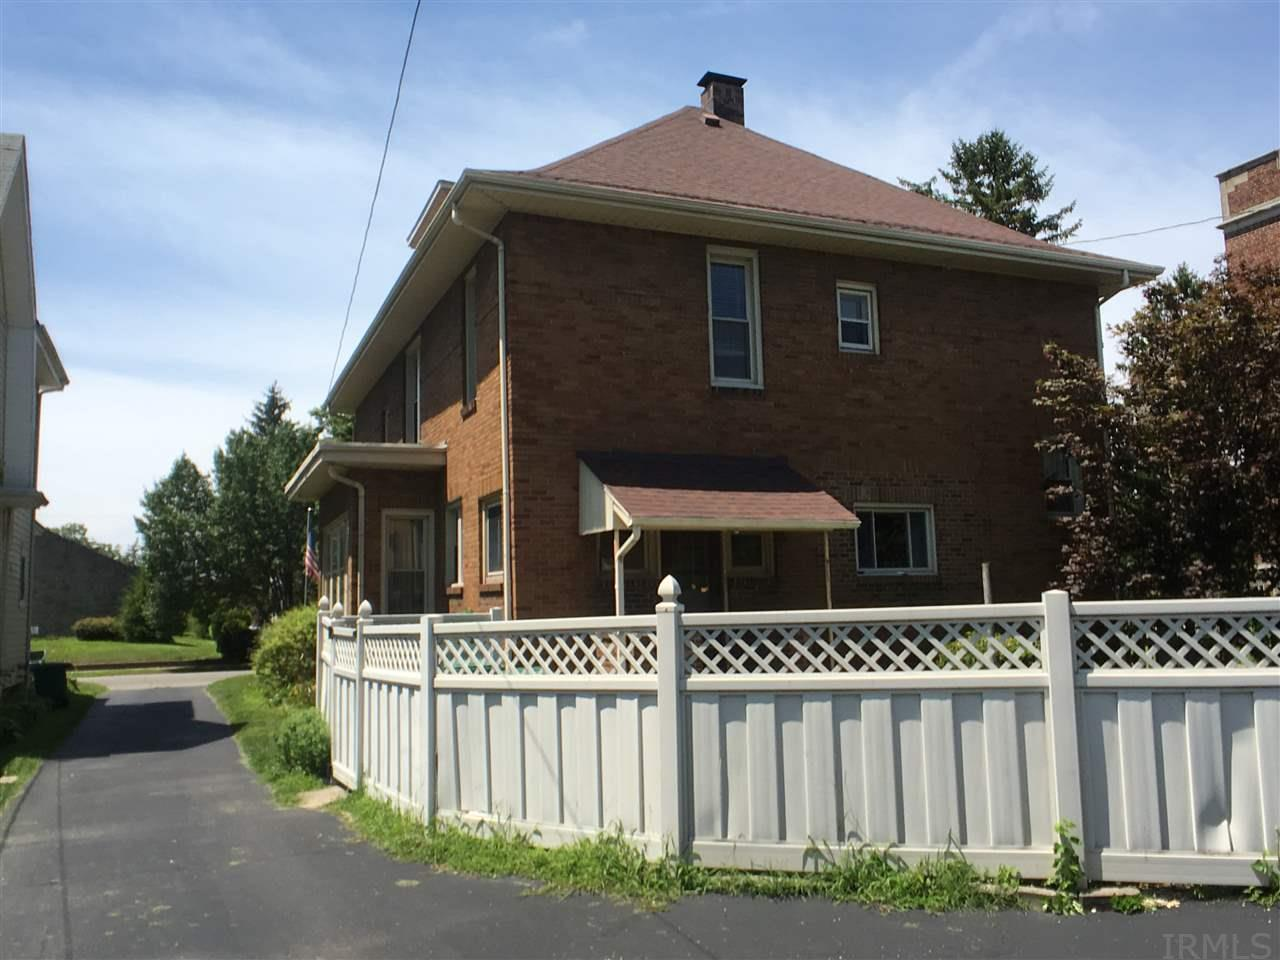 528 S 14TH ST, New Castle, IN 47362